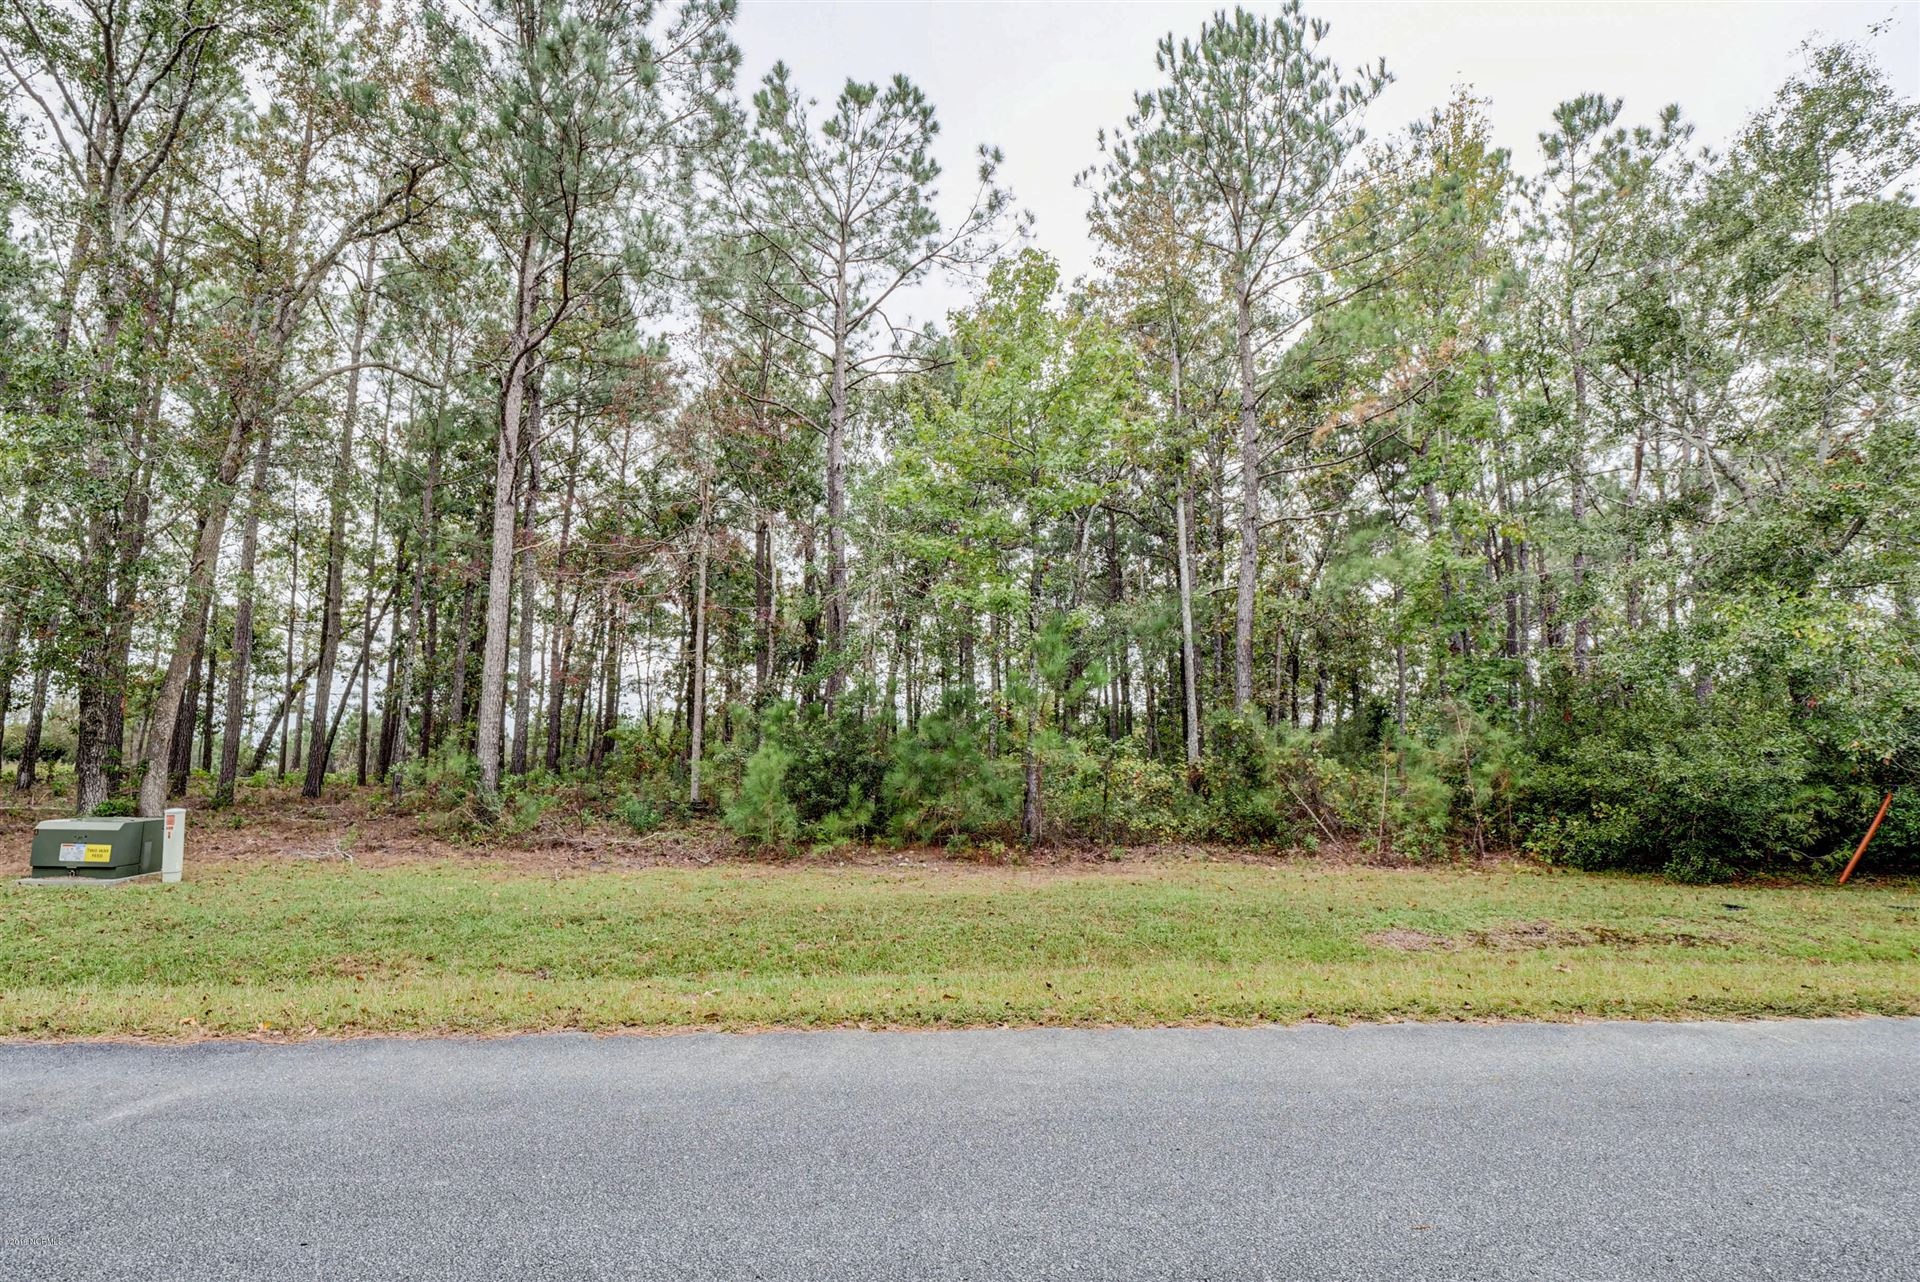 Photo of 247 Mimosa Drive, Sneads Ferry, NC 28460 (MLS # 100295934)